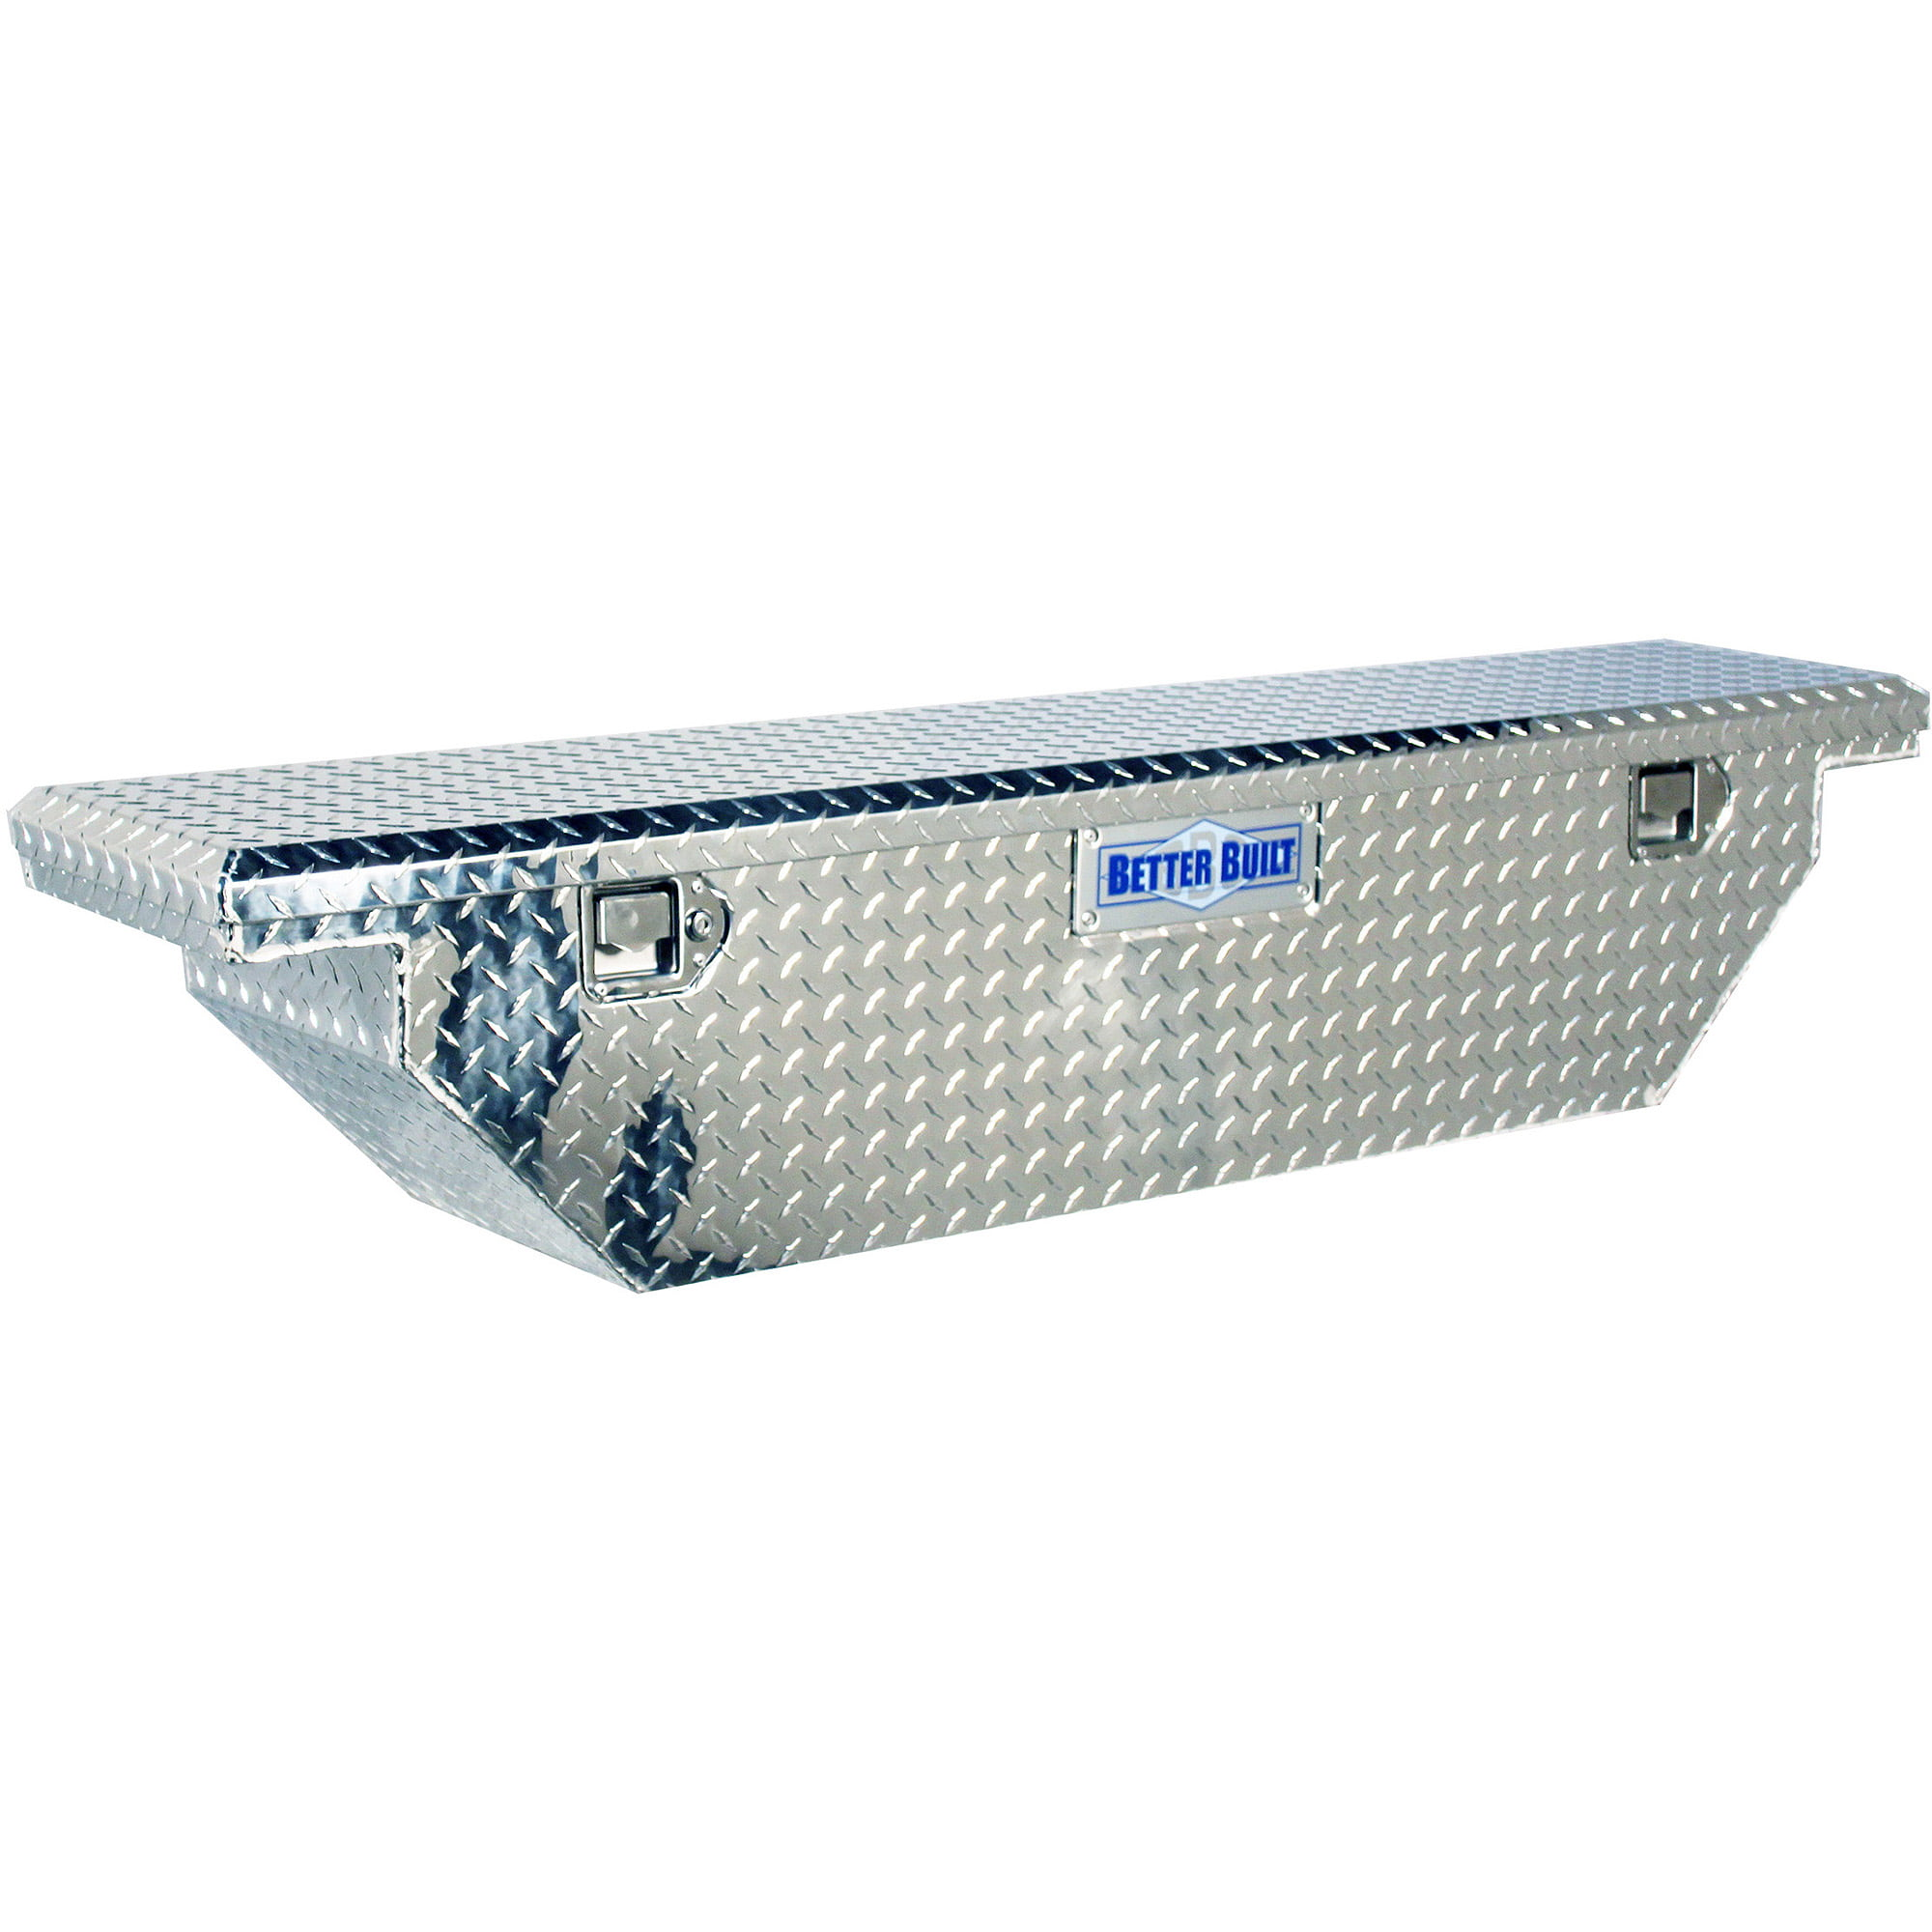 """Better Built 61.5"""" Crown Series Slimline Low Profile Crossover Universal Wedge Truck Tool Box by BETTER BUILT"""